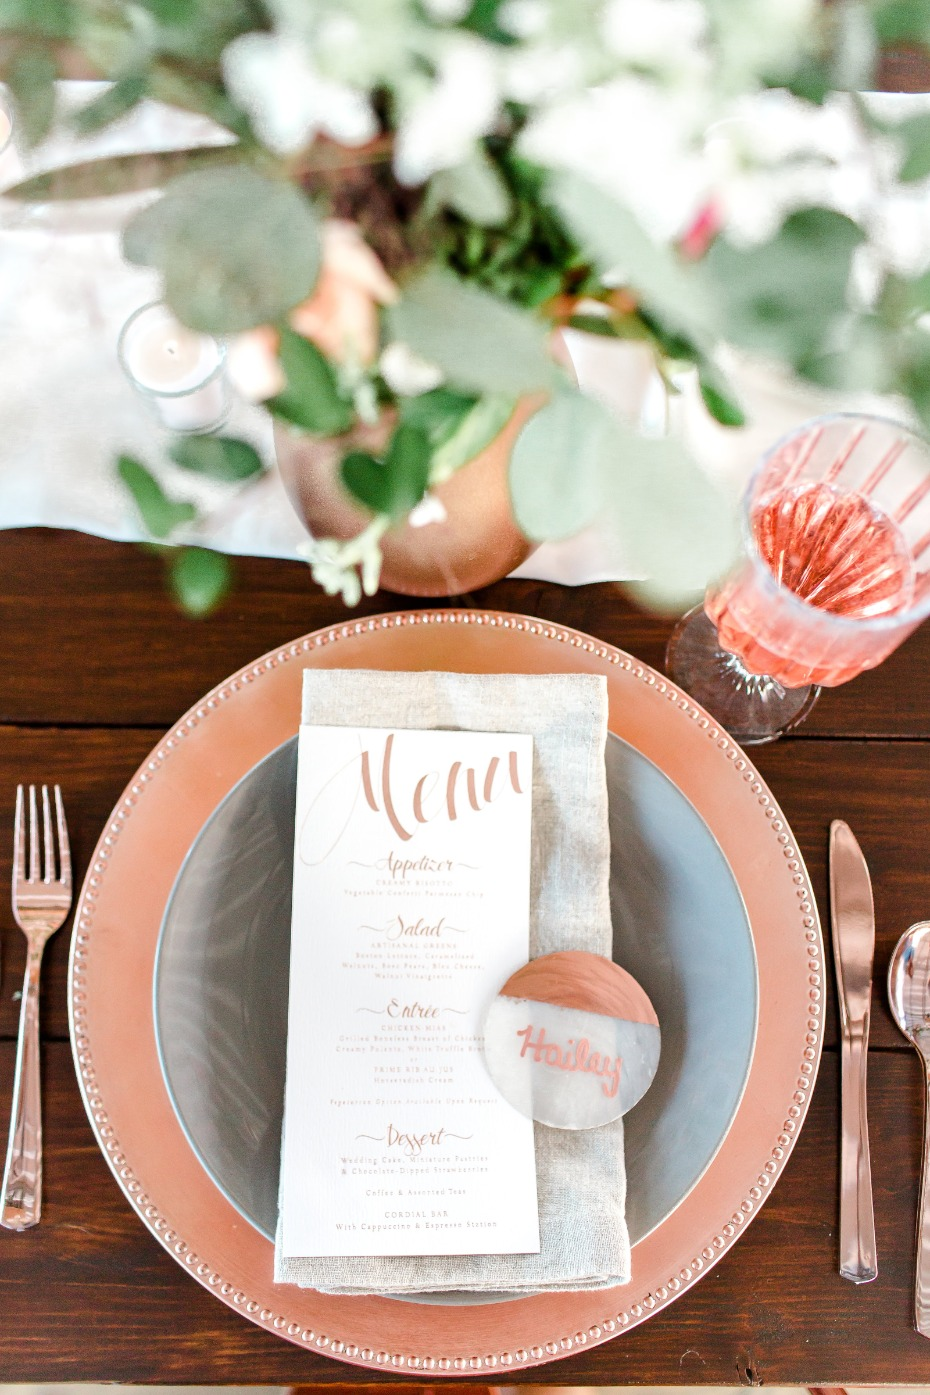 Rose gold place setting for a wedding